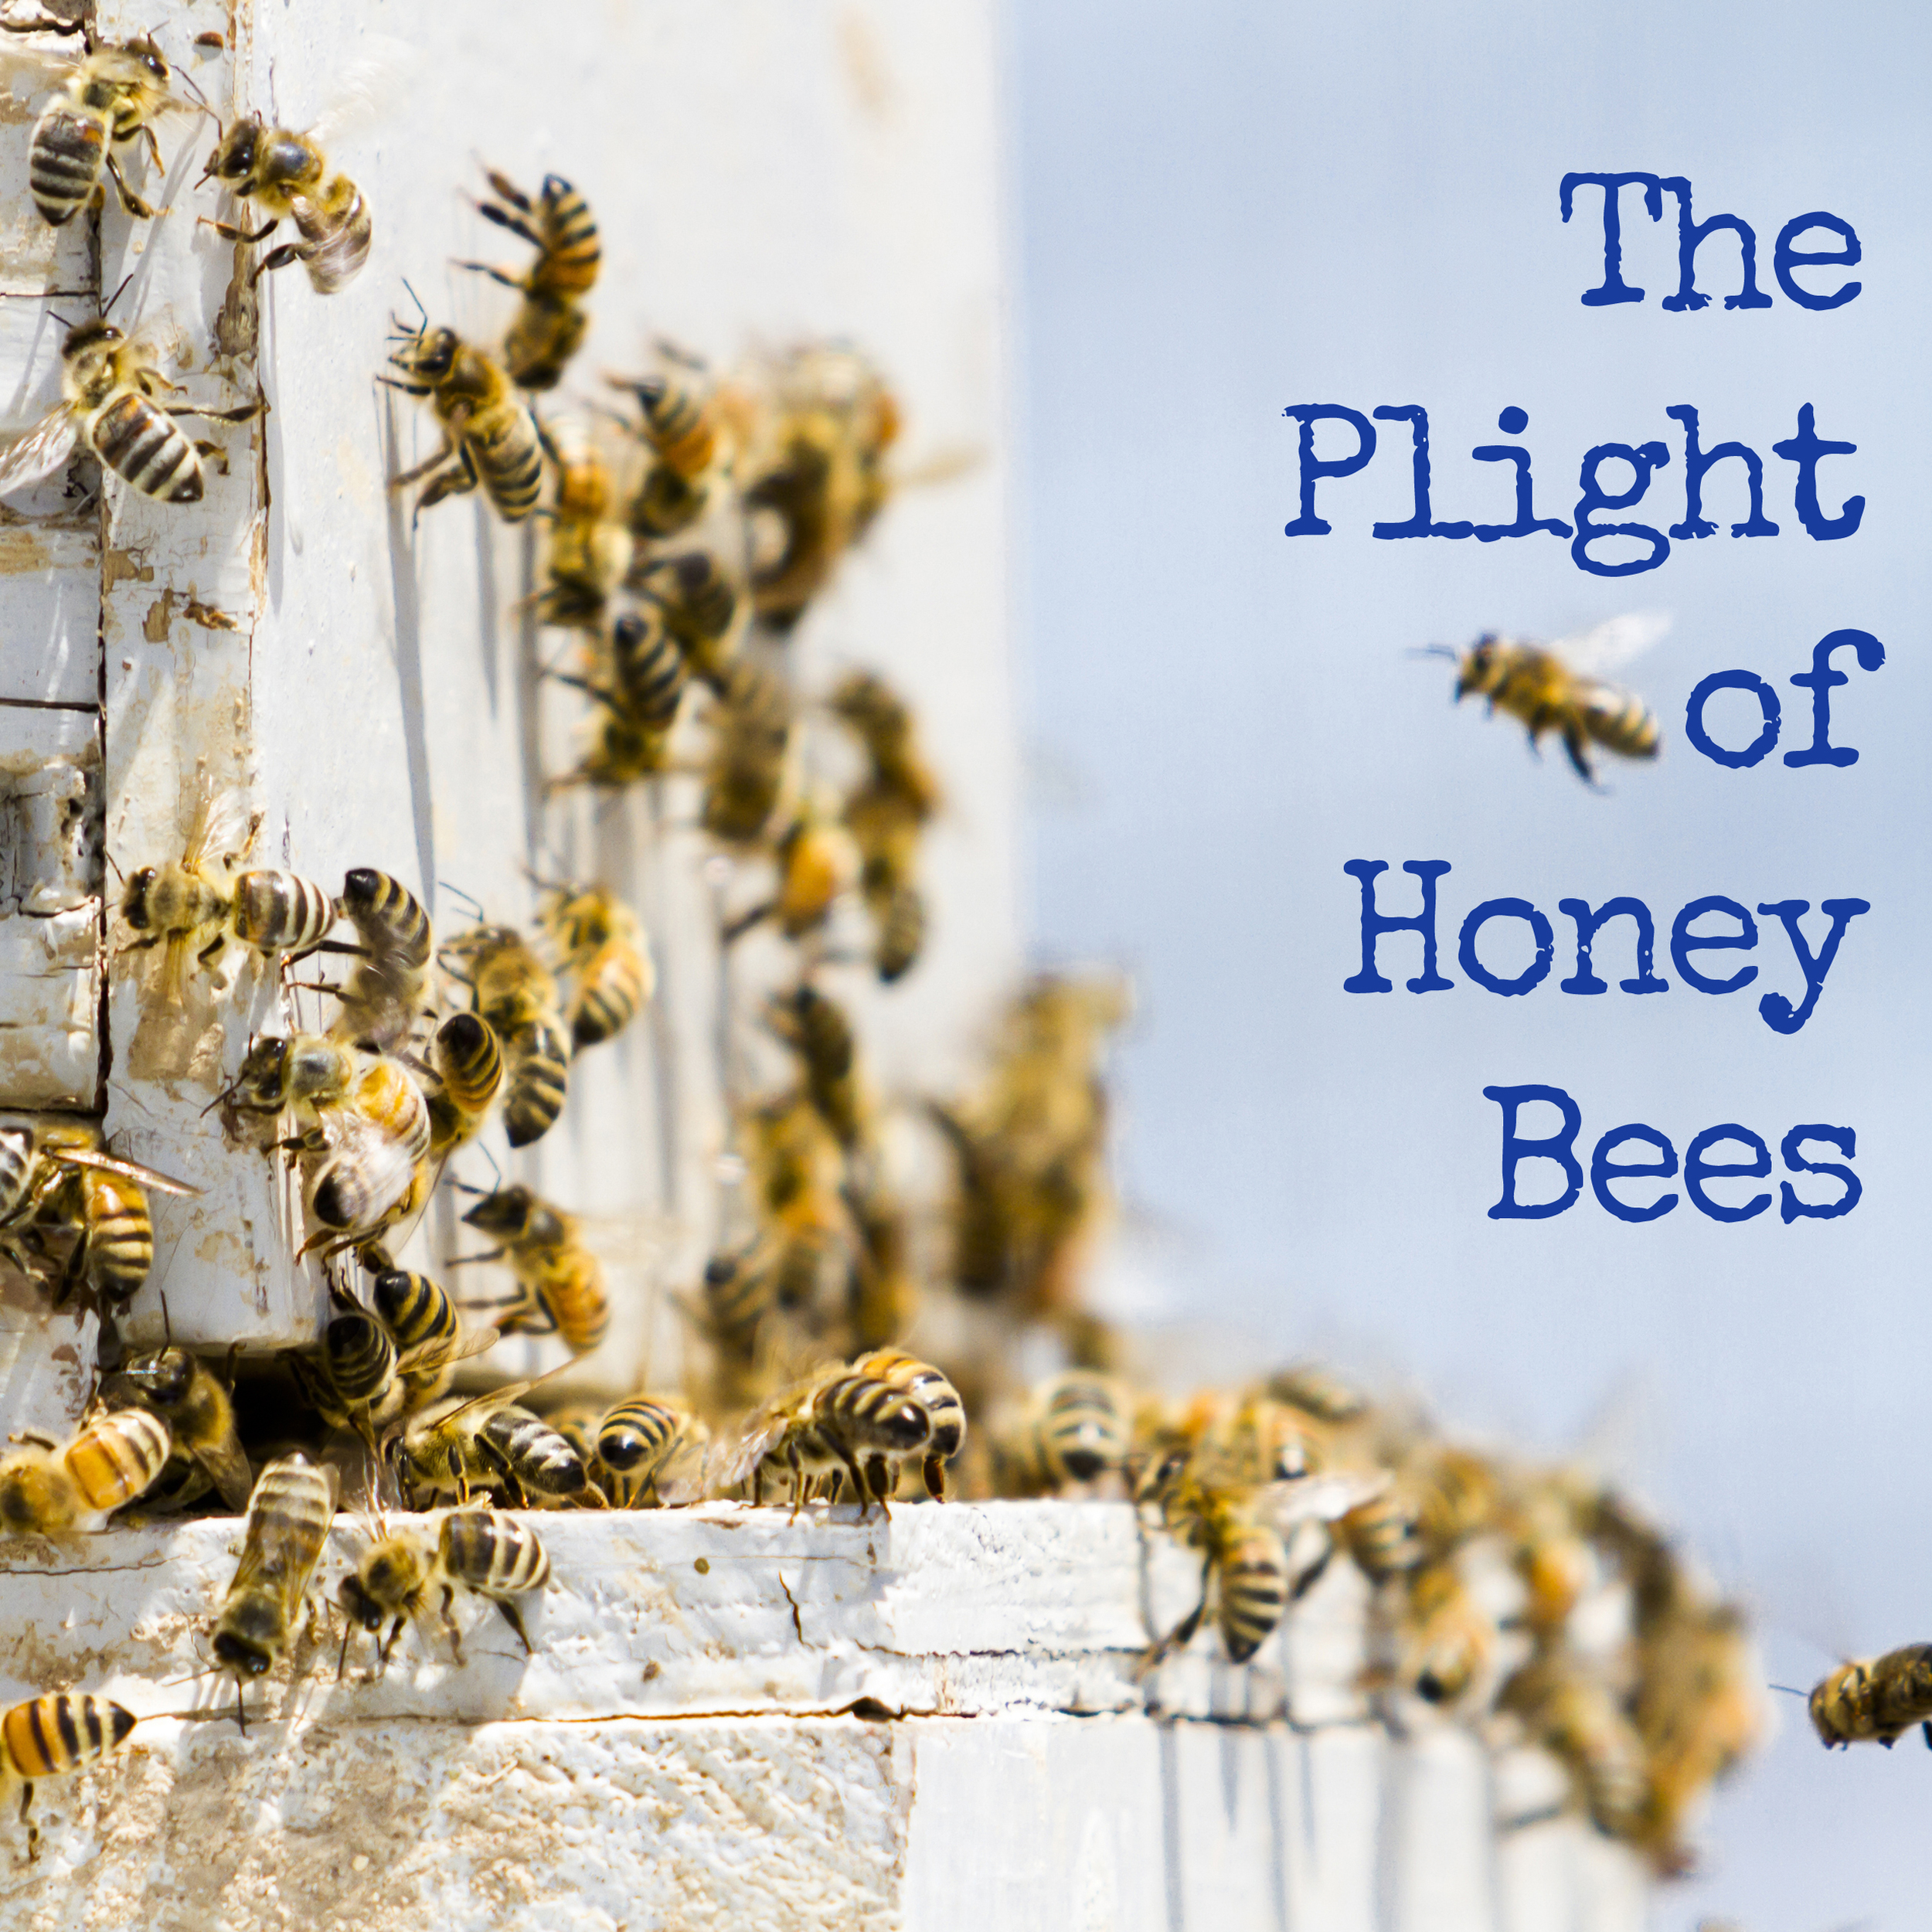 Since 2005, honey bee populations have been in steep decline. Threats from the mysterious syndrome called Colony Collapse Disorder, pests like varroa mites,and potentially lethal combinations of pesticides, herbicides and fungicides have taken a devestating toll. Average annual U.S. losses have held steady near 30 percent. This means that 1 out of 3 hives will likely not survive the year.